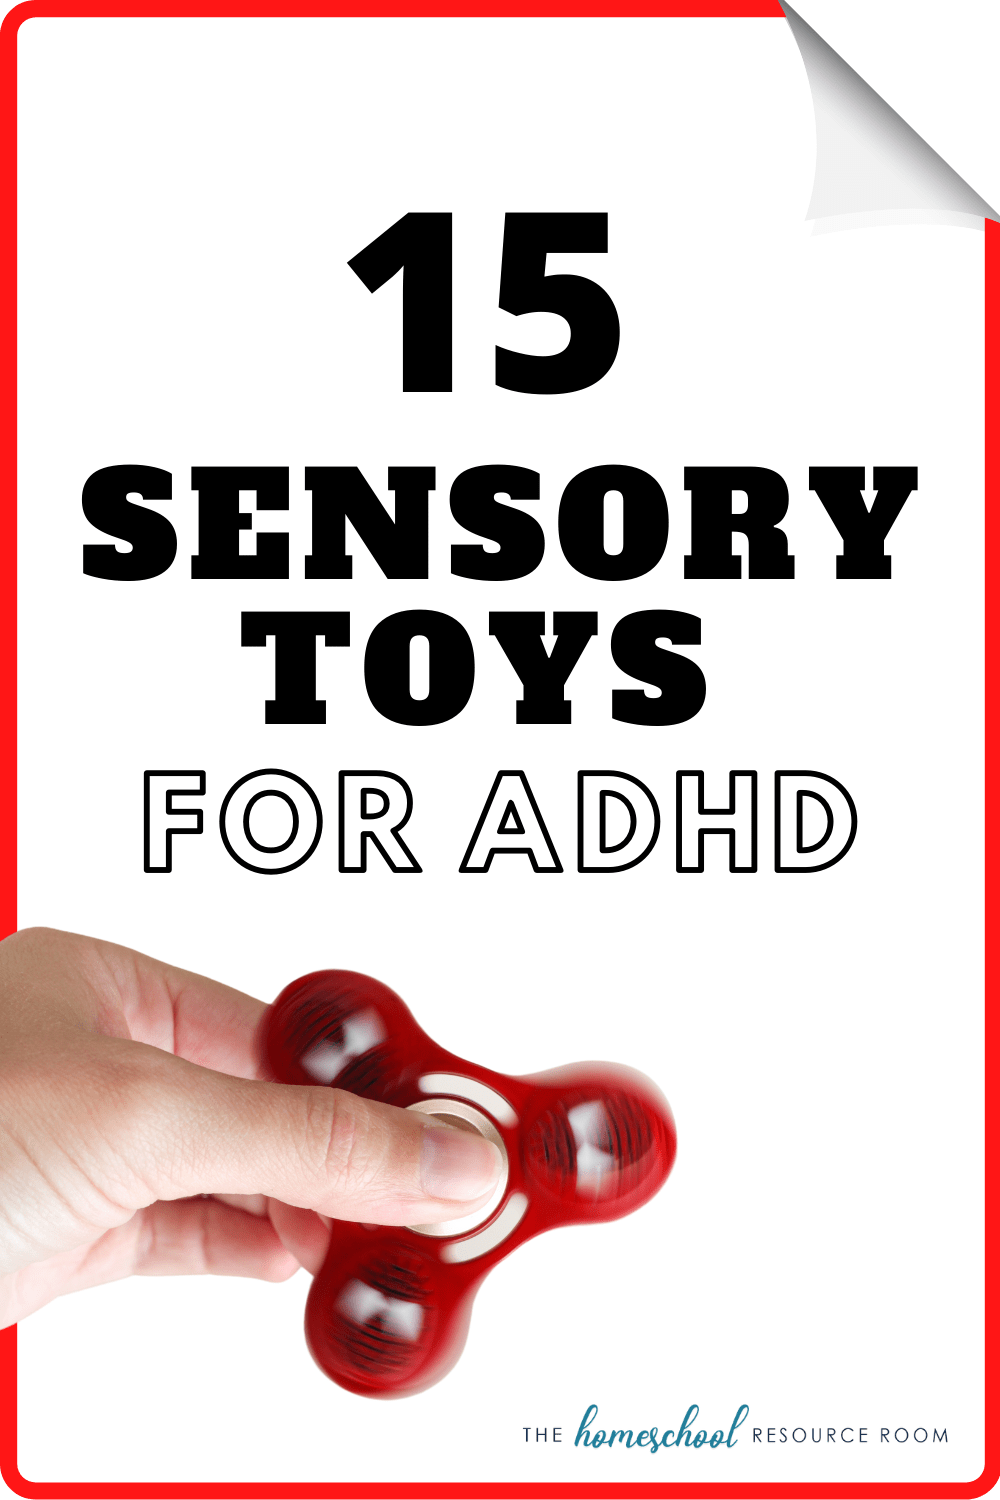 15 great sensory toys for ADHD by category. Find what your kids need to stim so that they can stay calm and focused during school times. #specialeducation #adhd #homeschooling